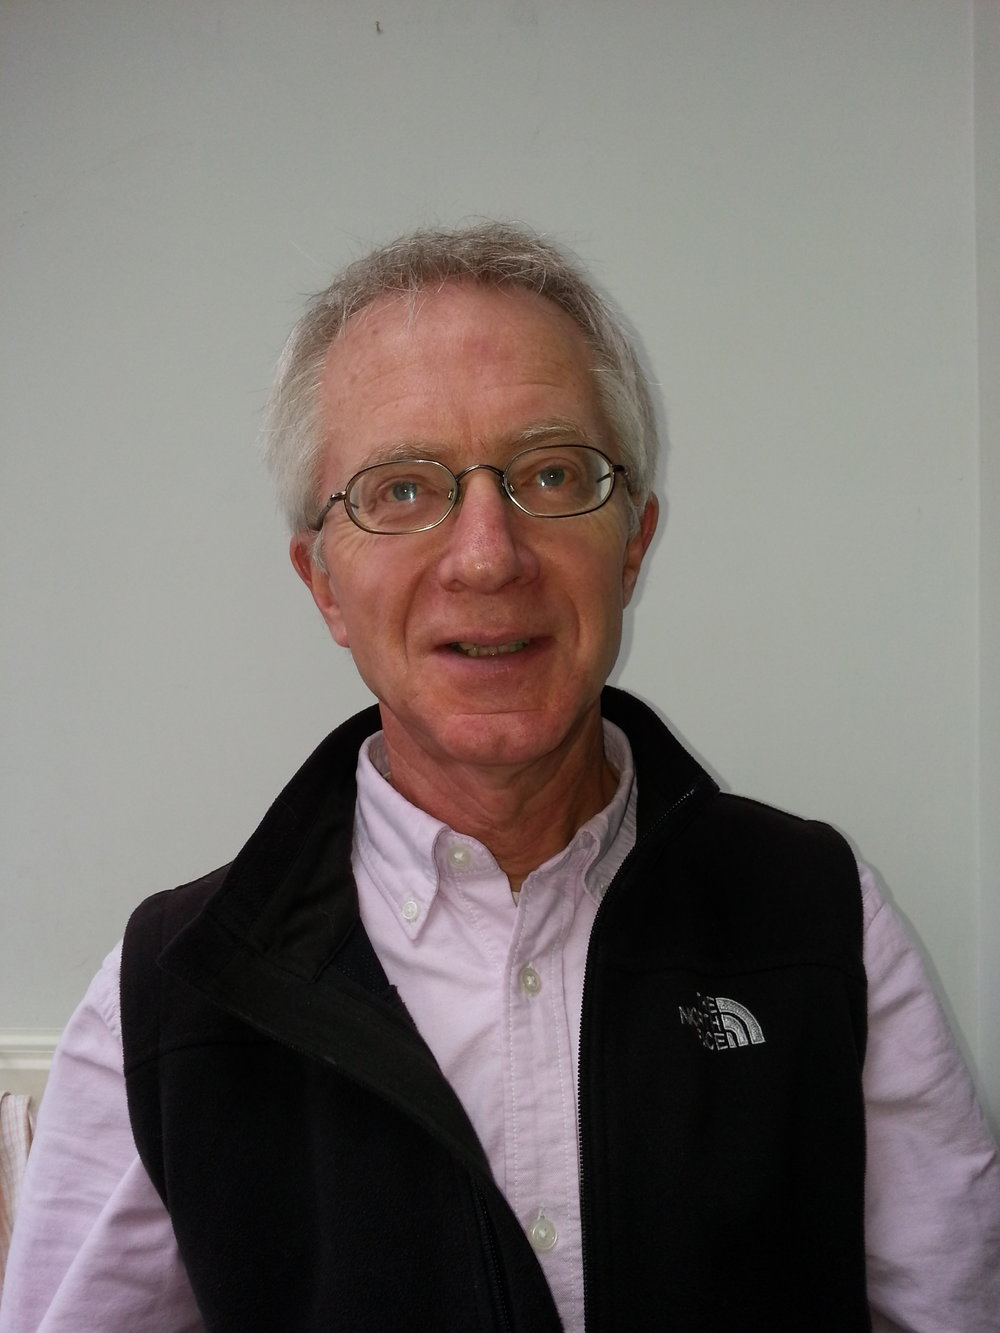 John Sanders – Former Information and Development Manager, The Nystagmus Network - John is the author of the Northwick stories, one of which has been adapted for the stage by UCAN.